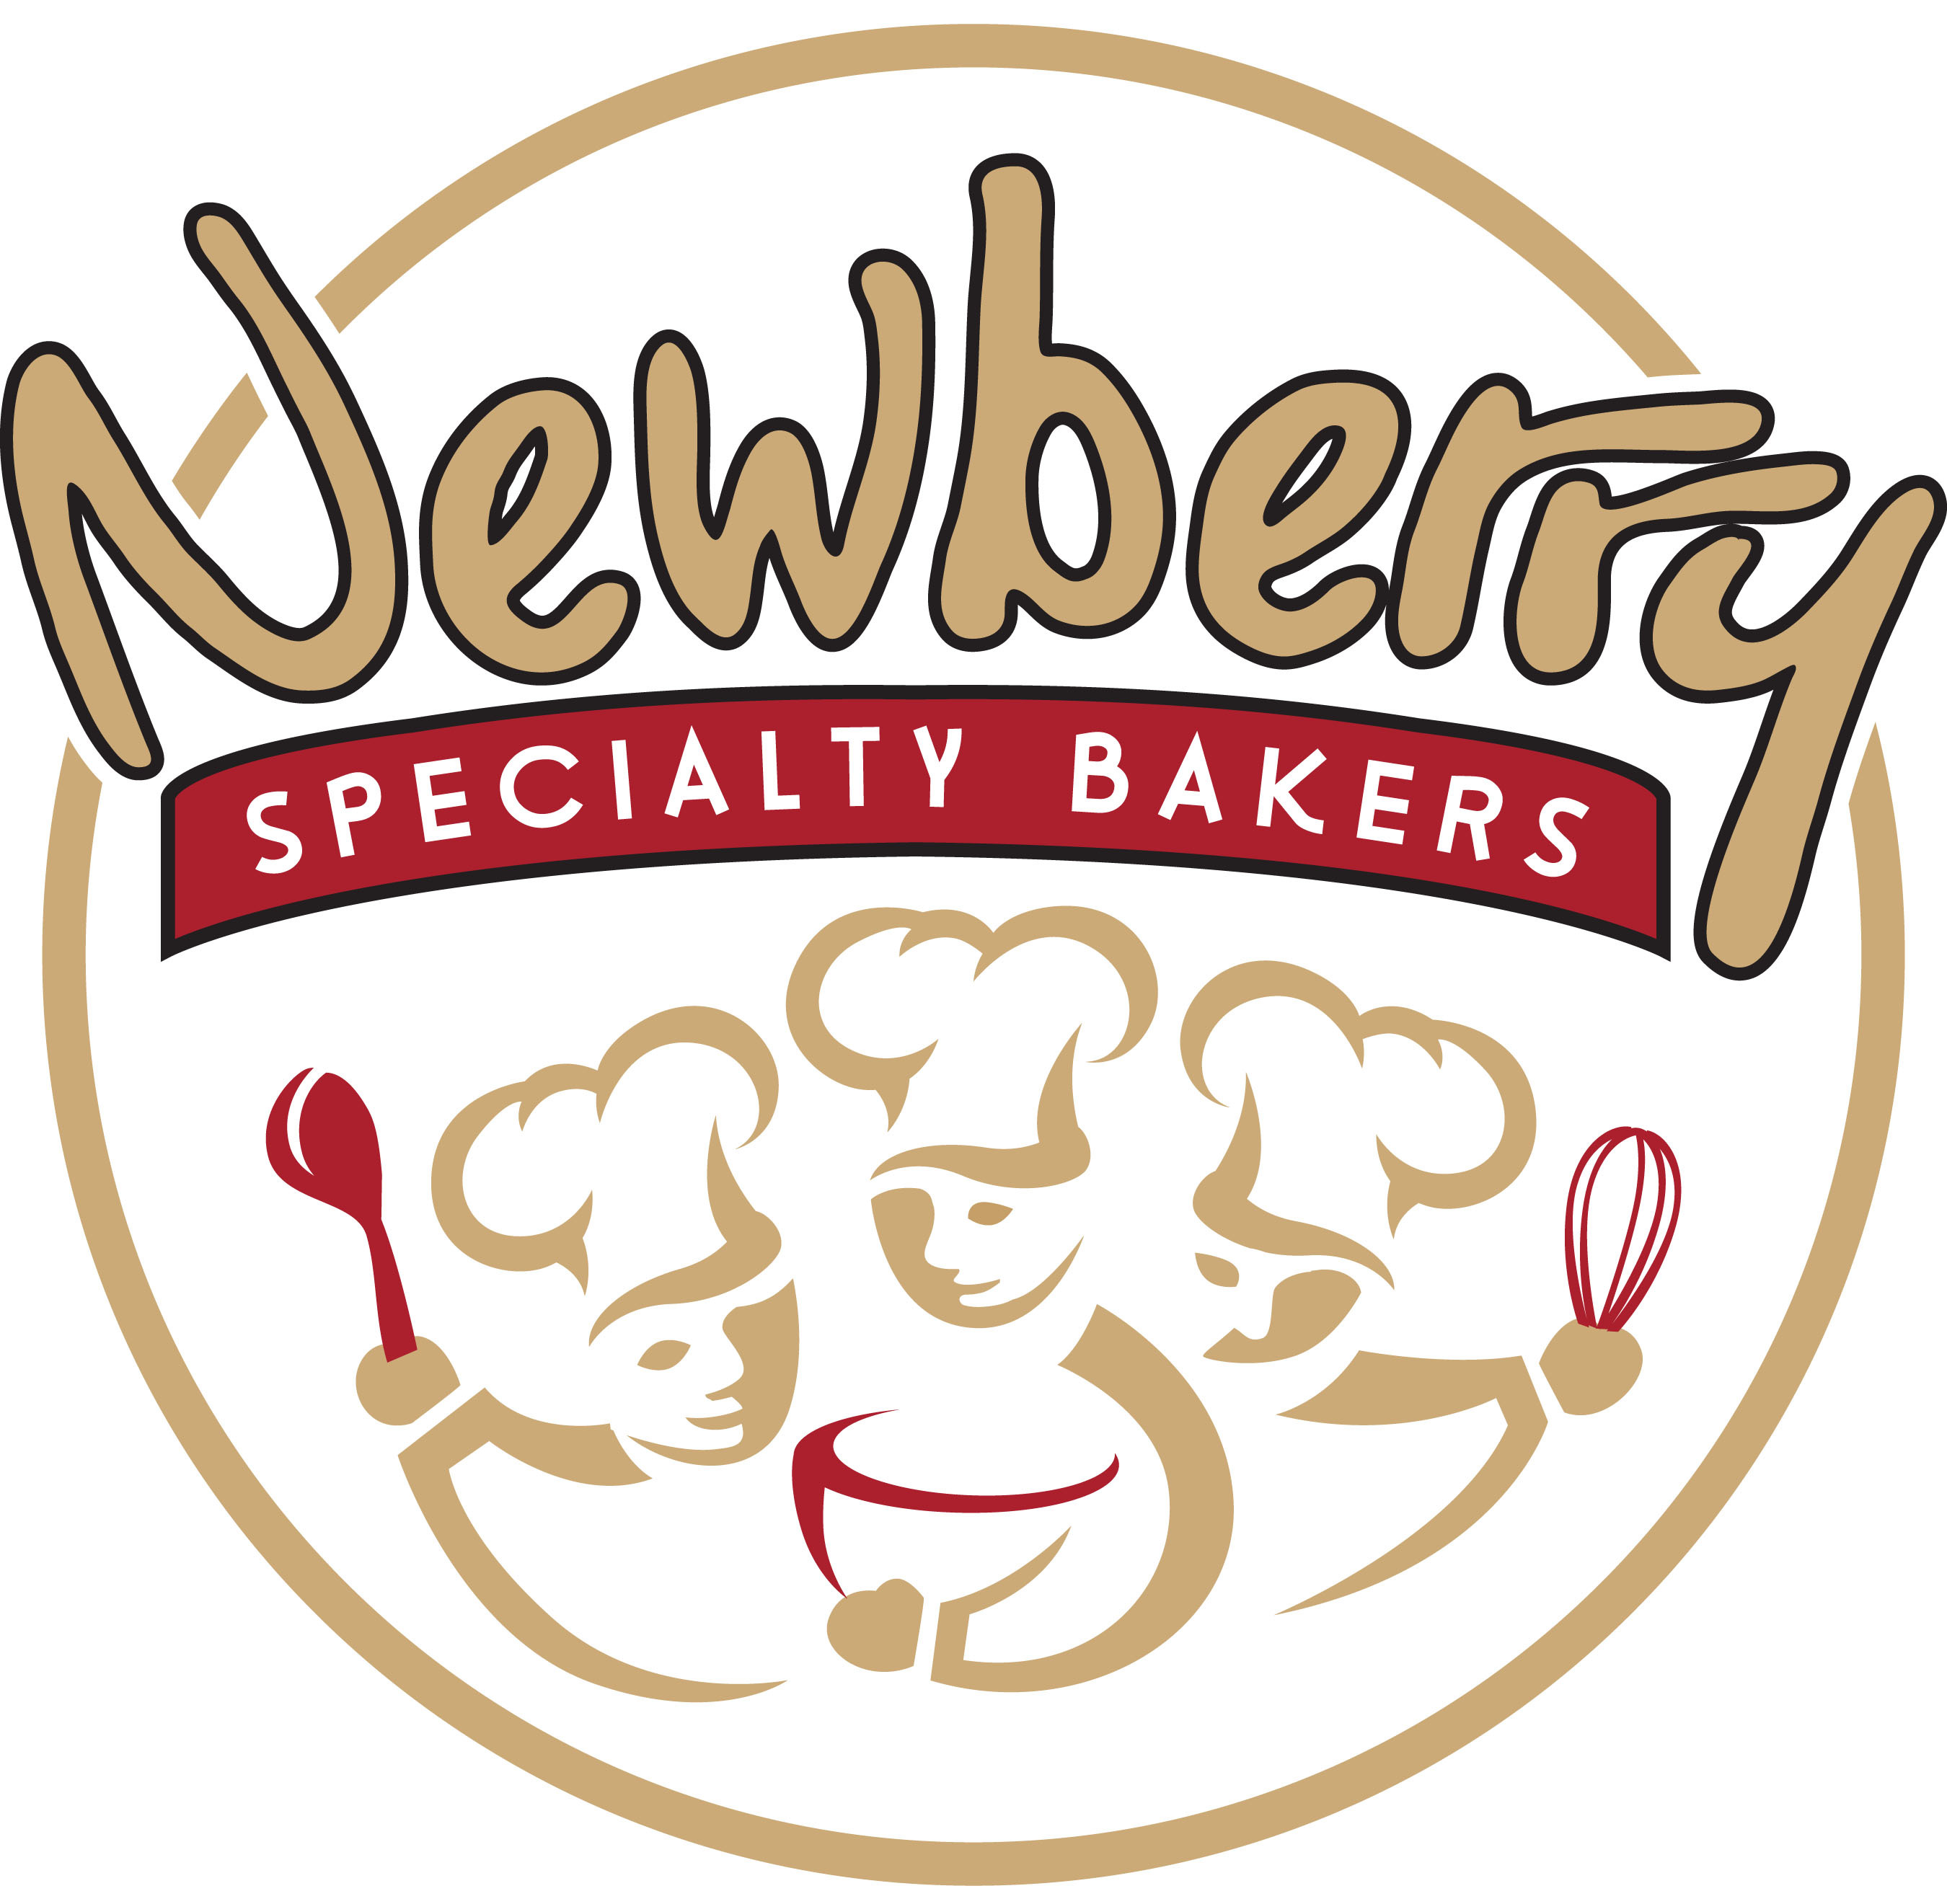 Newberry Specialty Bakers, Inc. - a leading provider of wholesale specialty baked goods to the grocery and ...